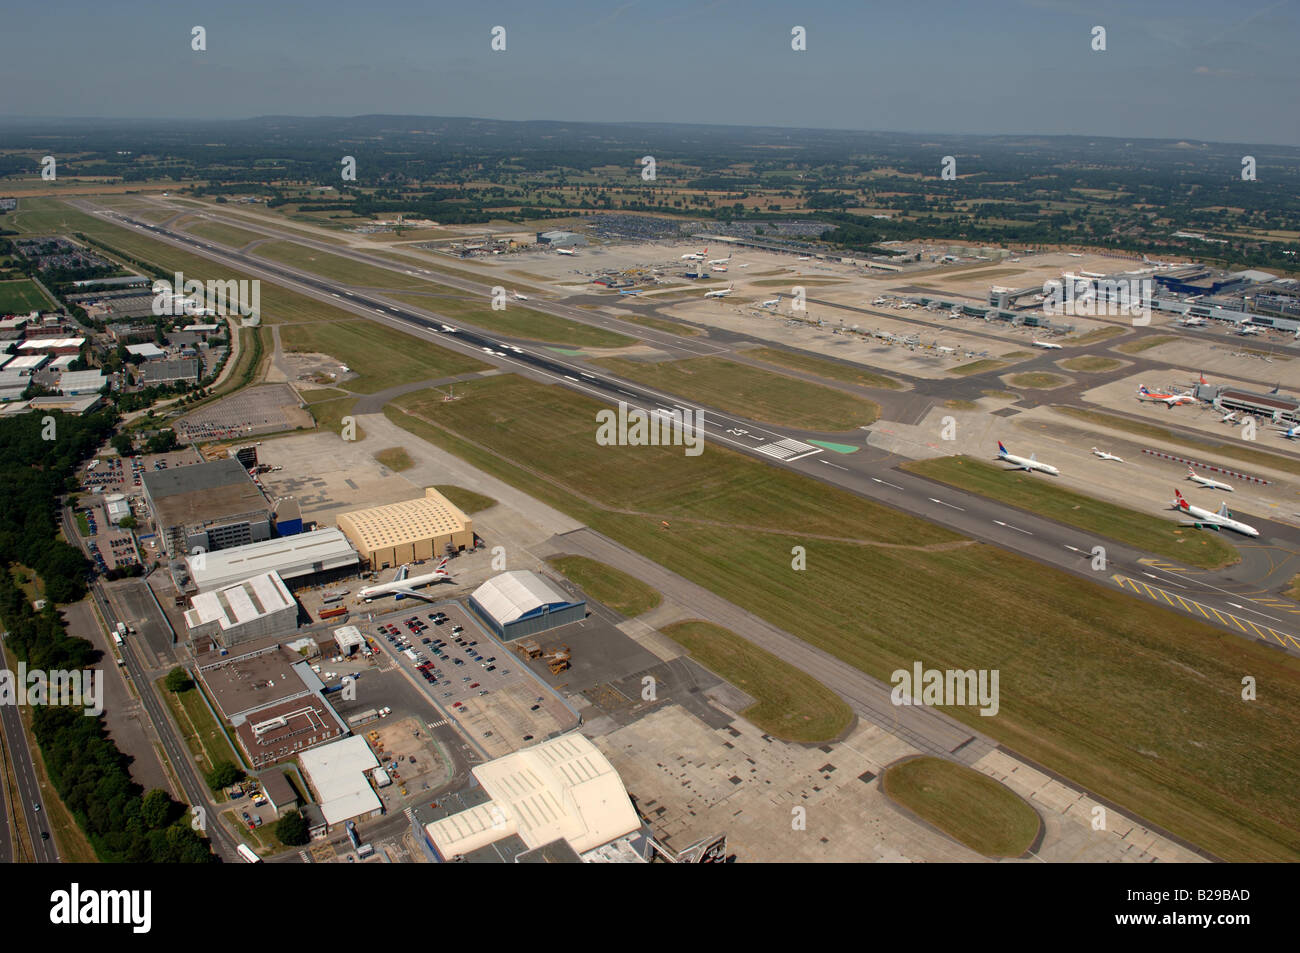 Gatwick Airport Date 12 03 2008 Ref ZB648 111149 0031 COMPULSORY CREDIT World Pictures Photoshot - Stock Image